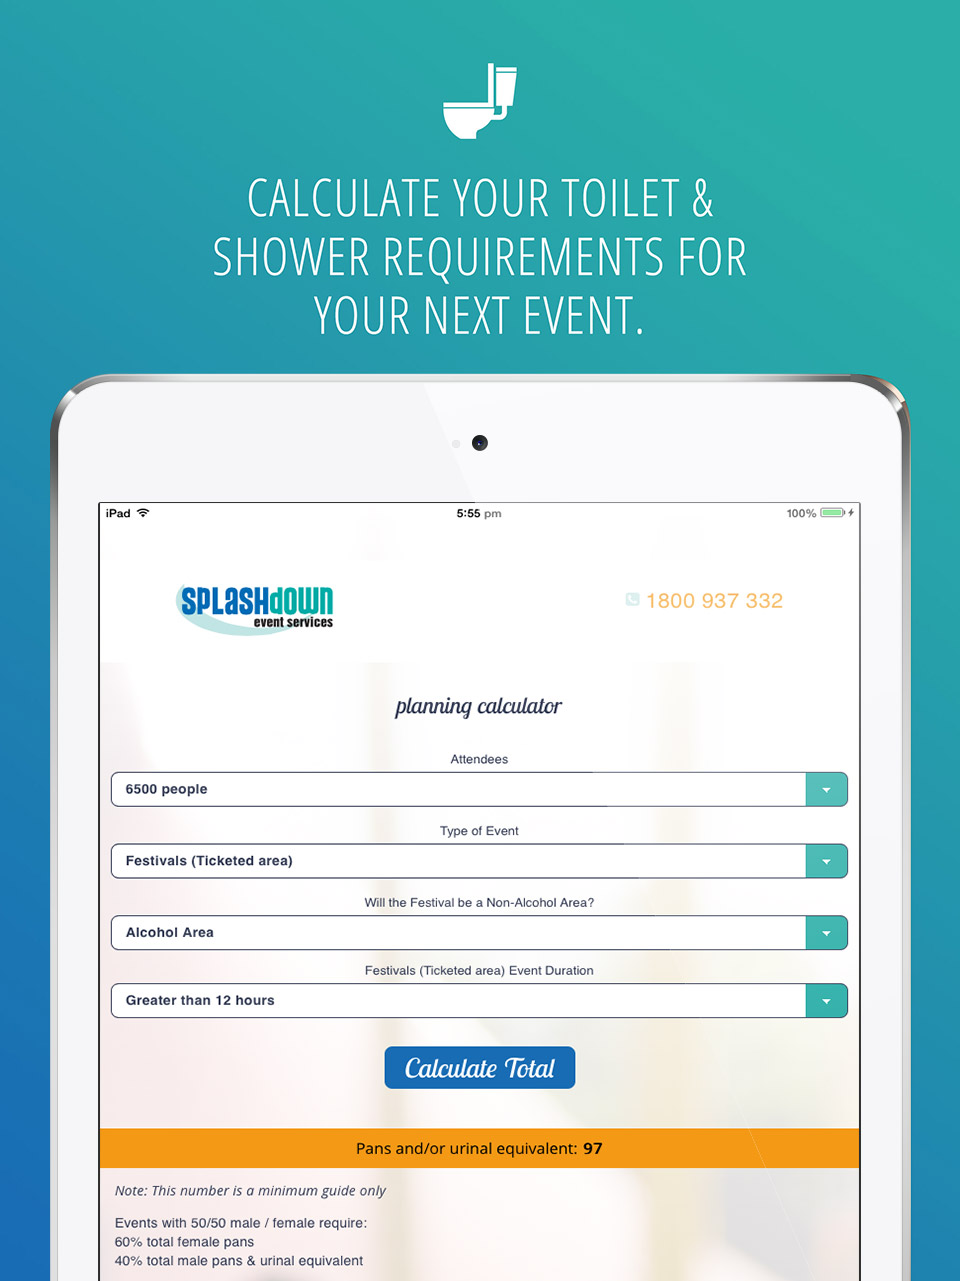 ToiletCalc App design and development by Eureka Creative